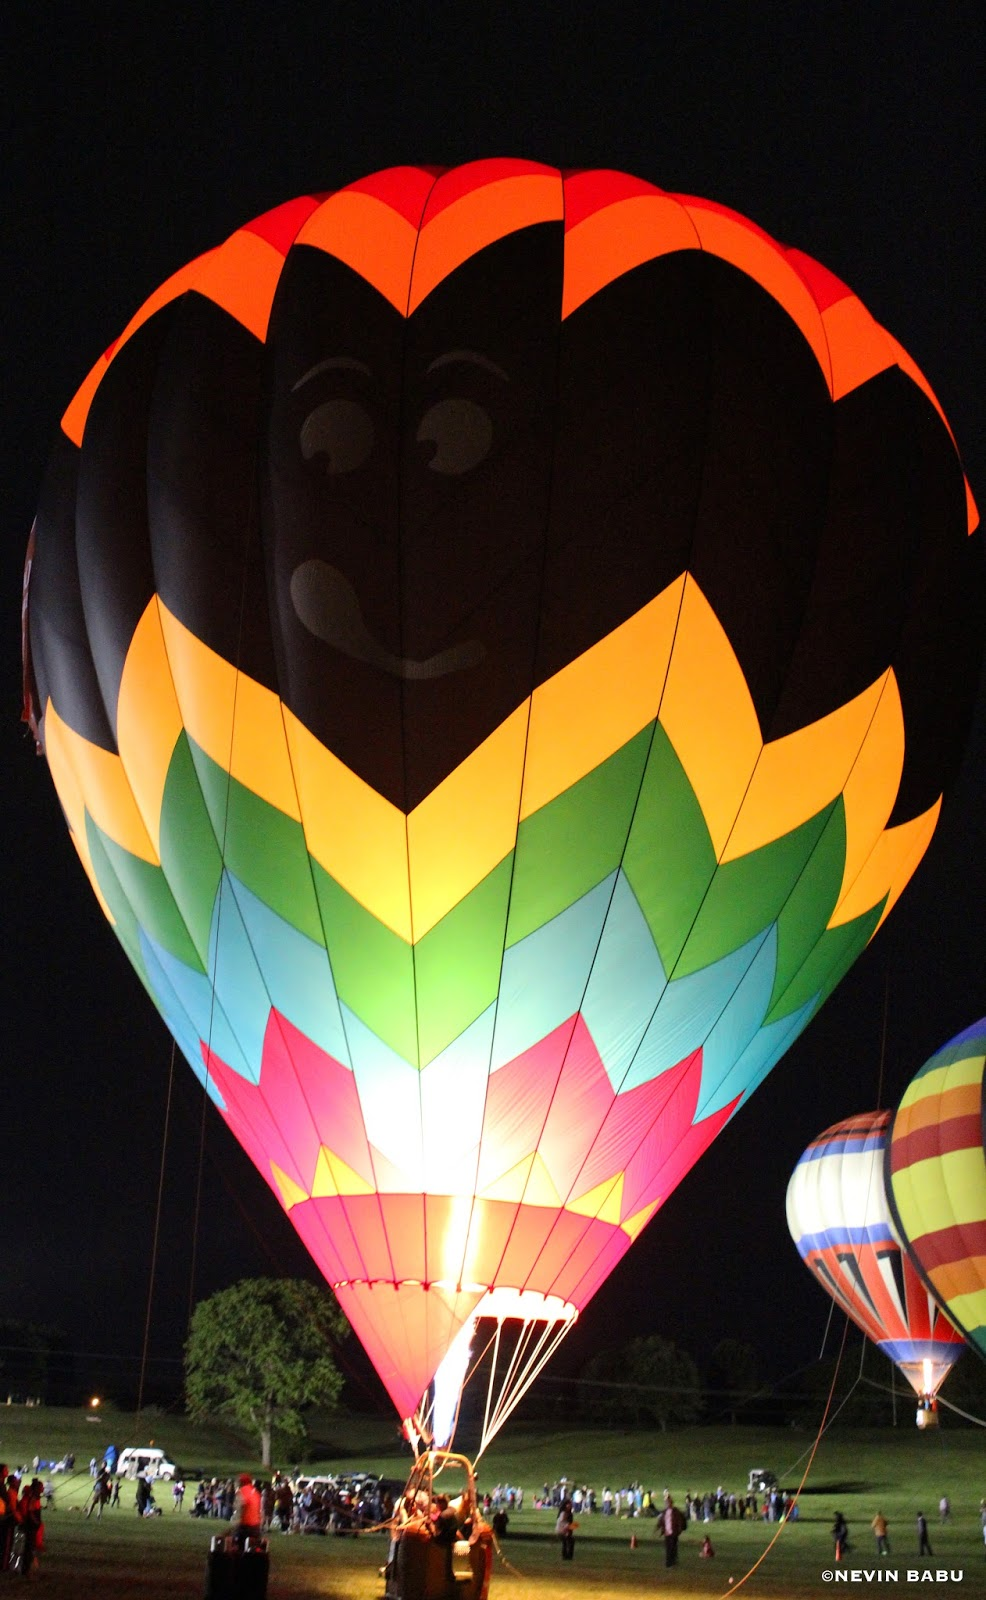 Hot Air Balloon Festival at Turf Valley in Ellicott City